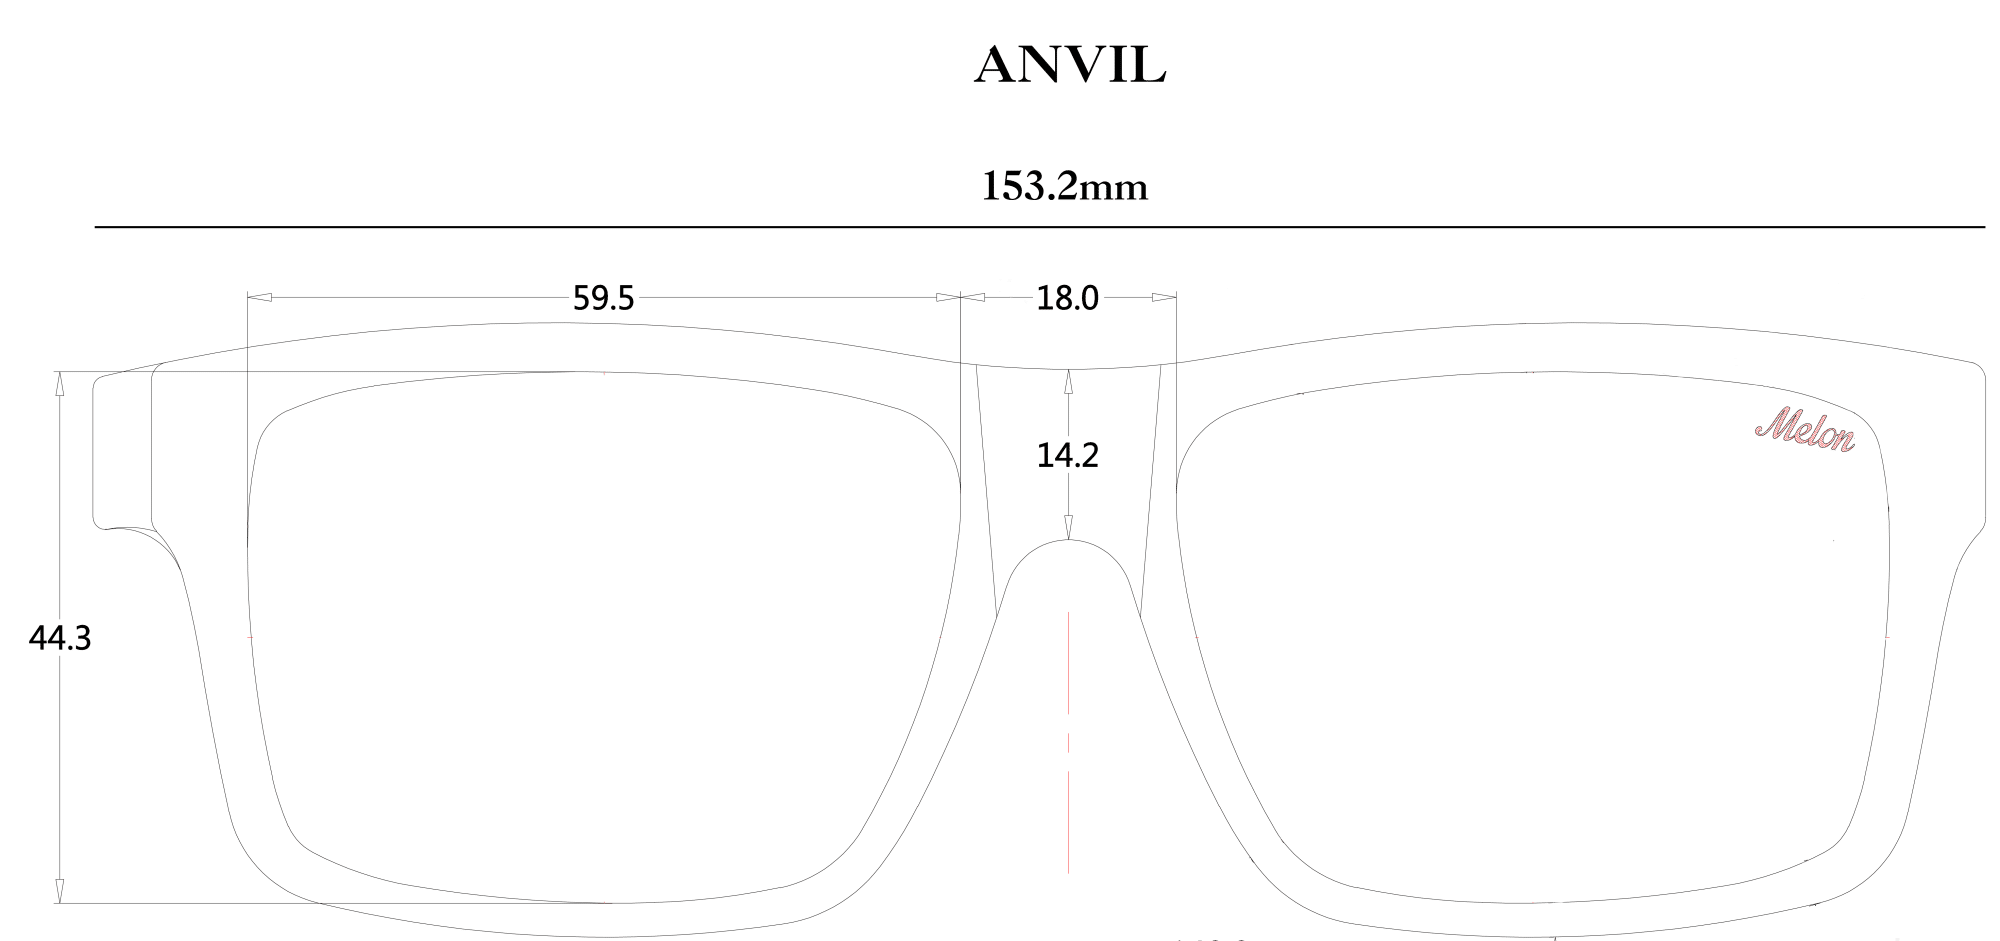 Melon Optics Anvil Sunglasses Size Guide